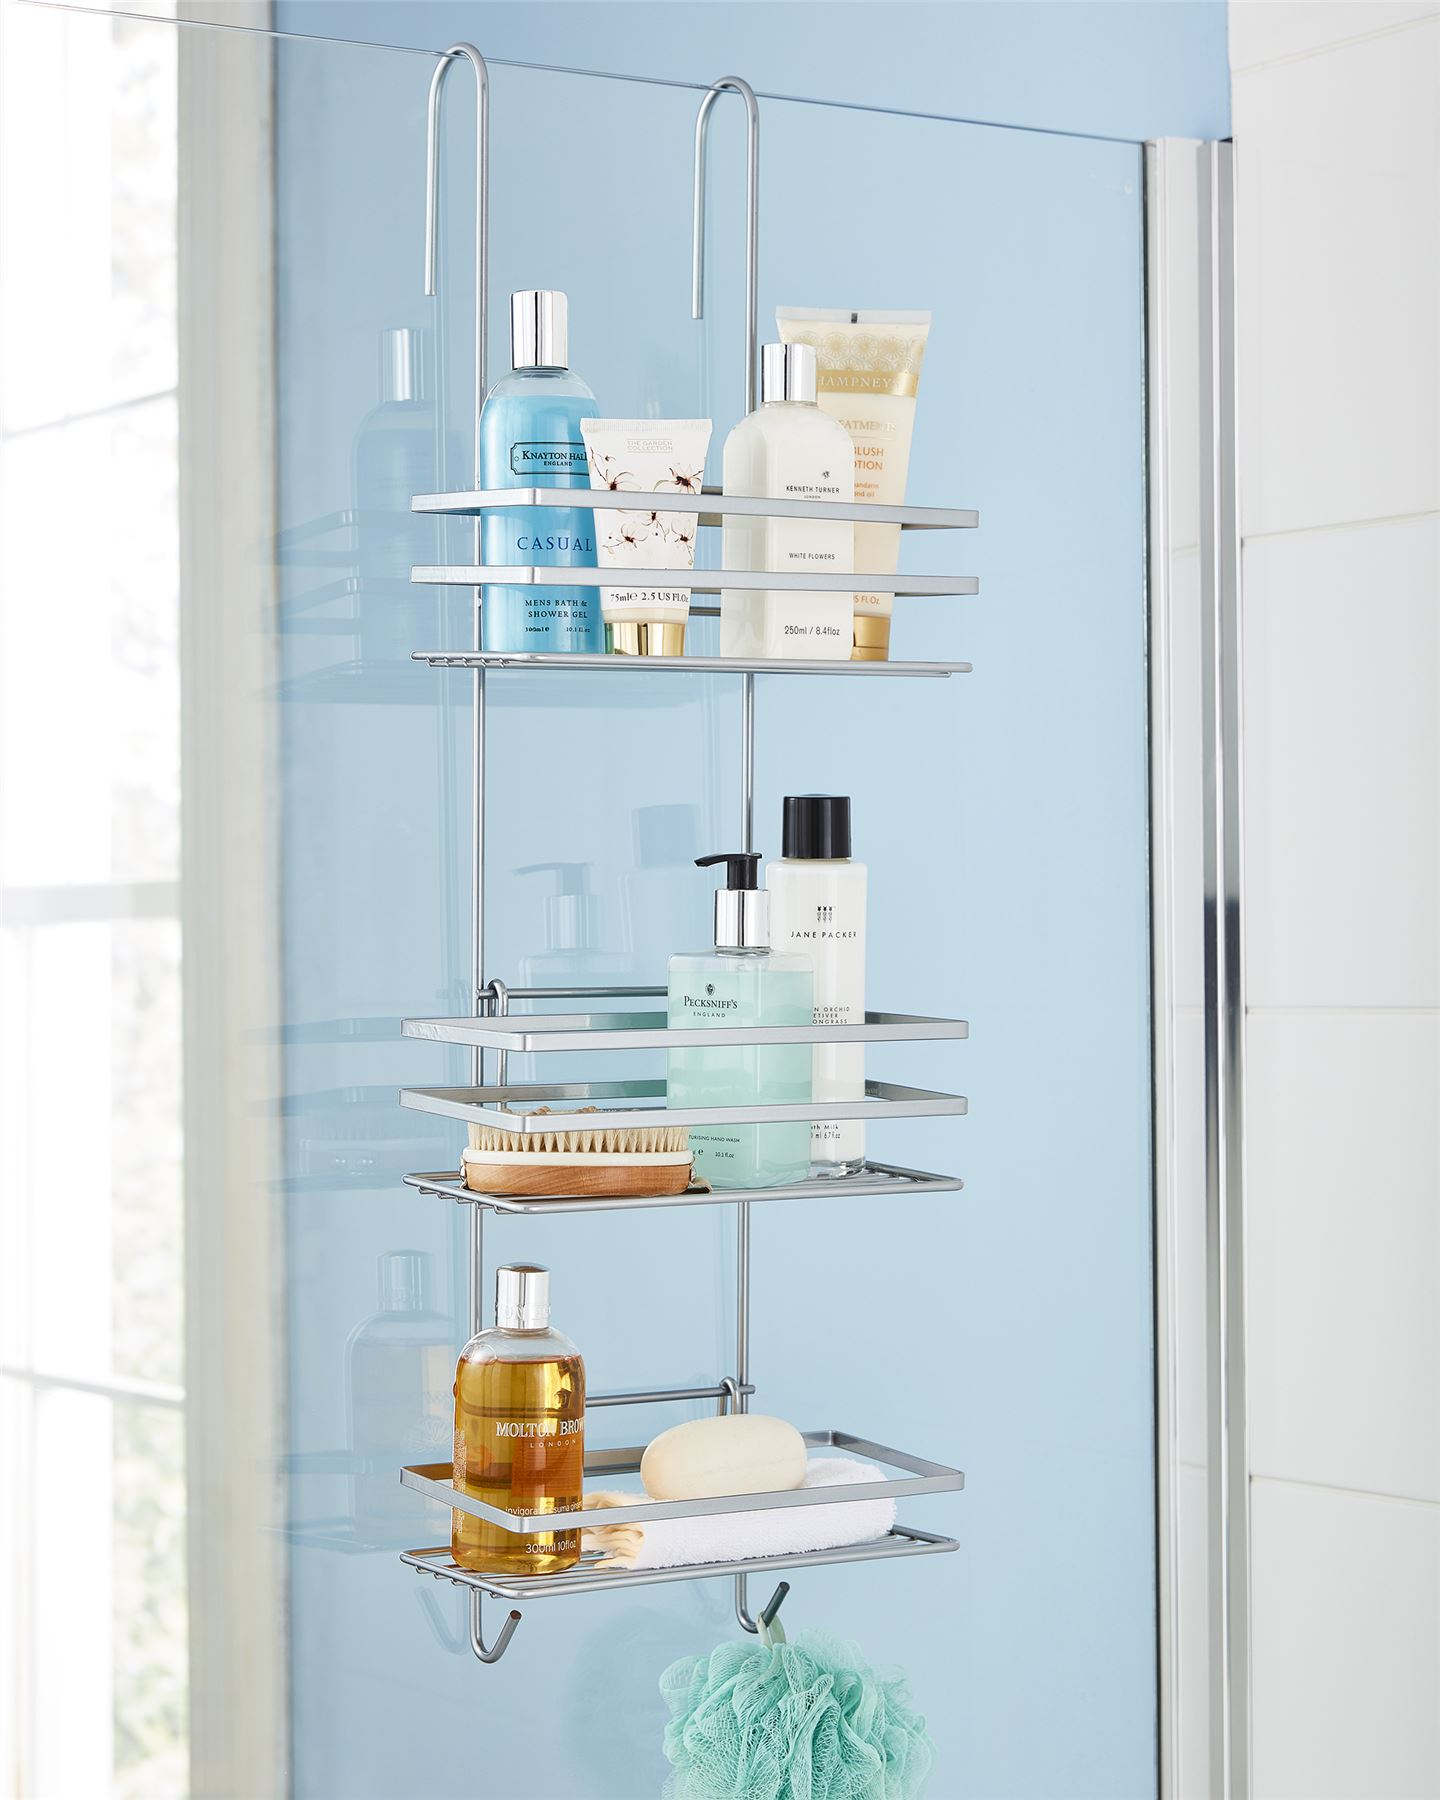 Metallic 2 3 Tier Shower Caddy Bathroom Storage Rack Shelf Organiser ...